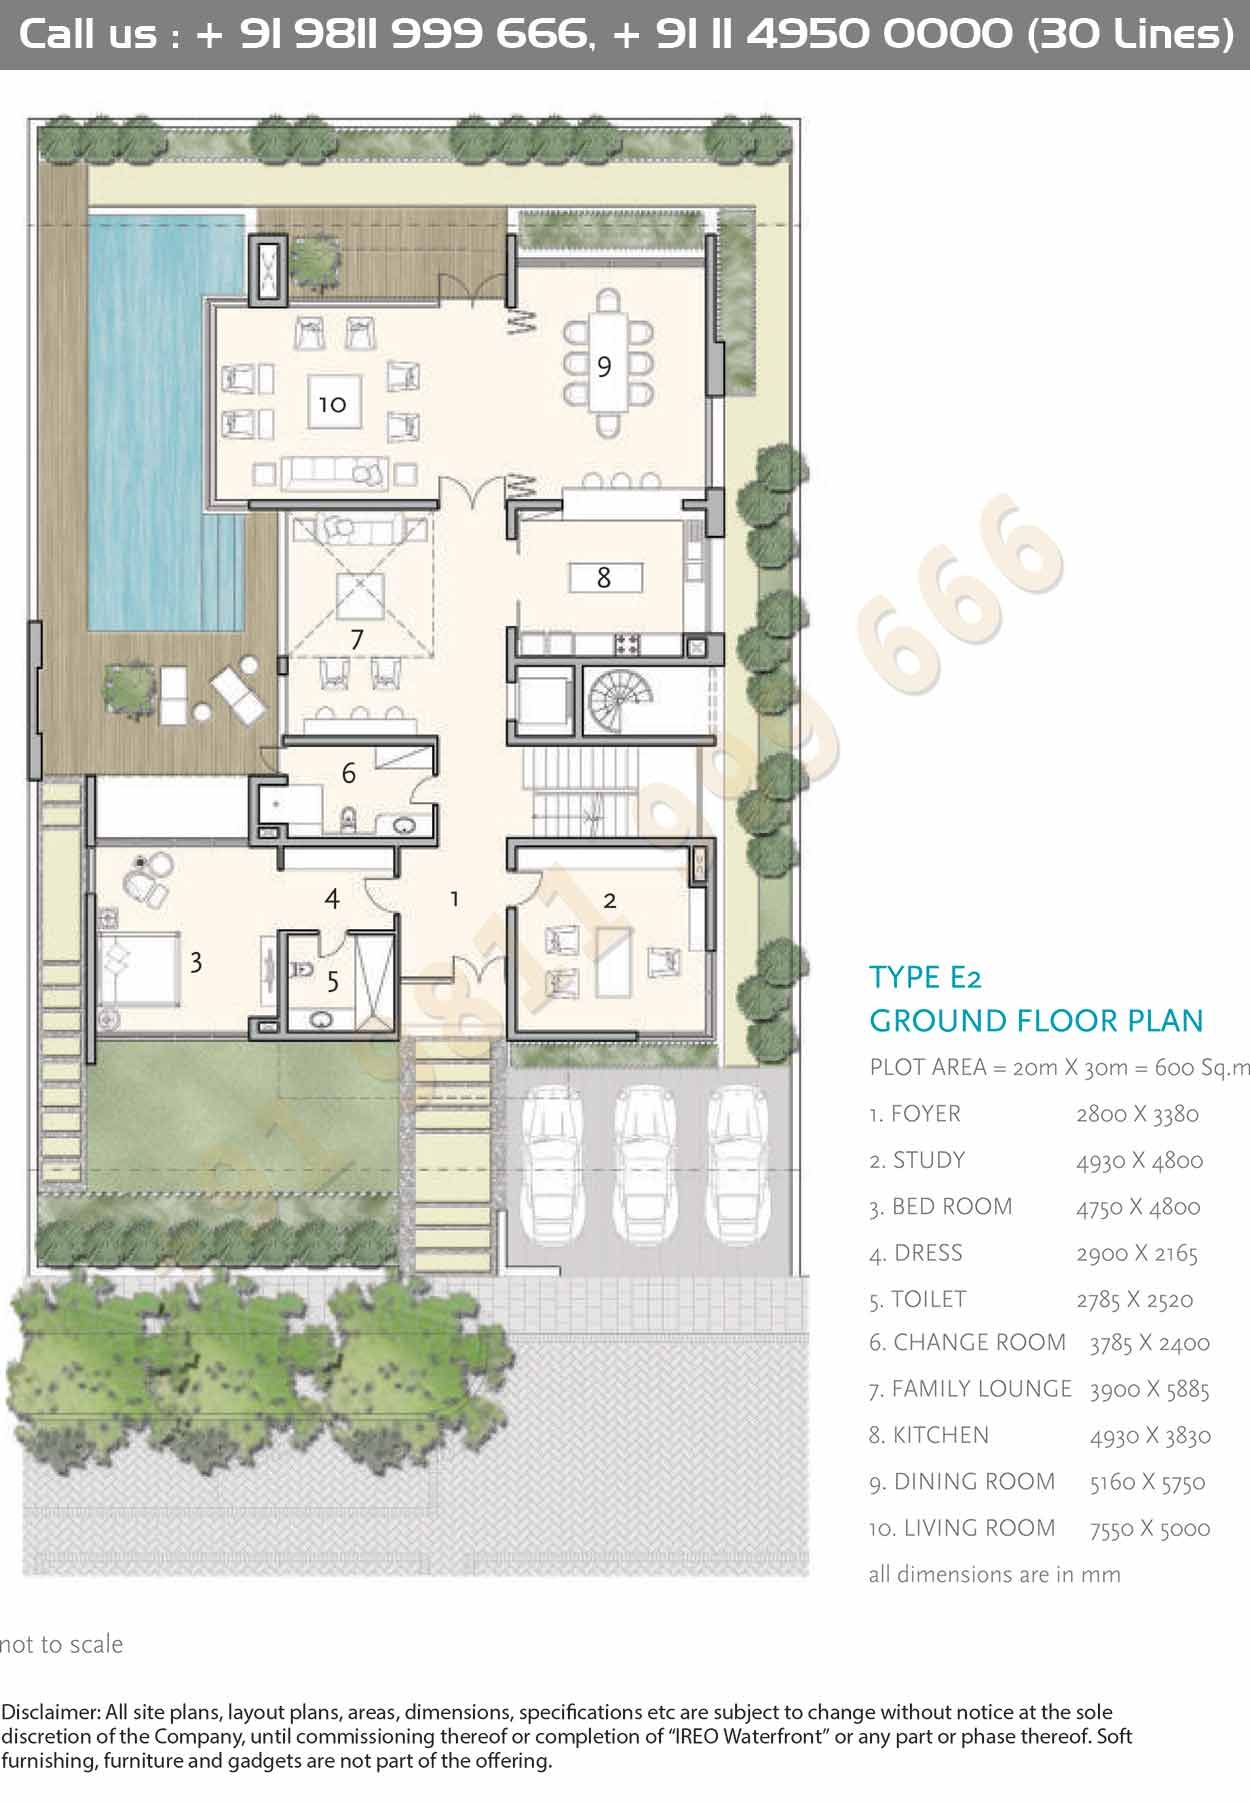 Type E2 Ground Floor Plan How To Plan Courtyard House Plans Architectural Floor Plans